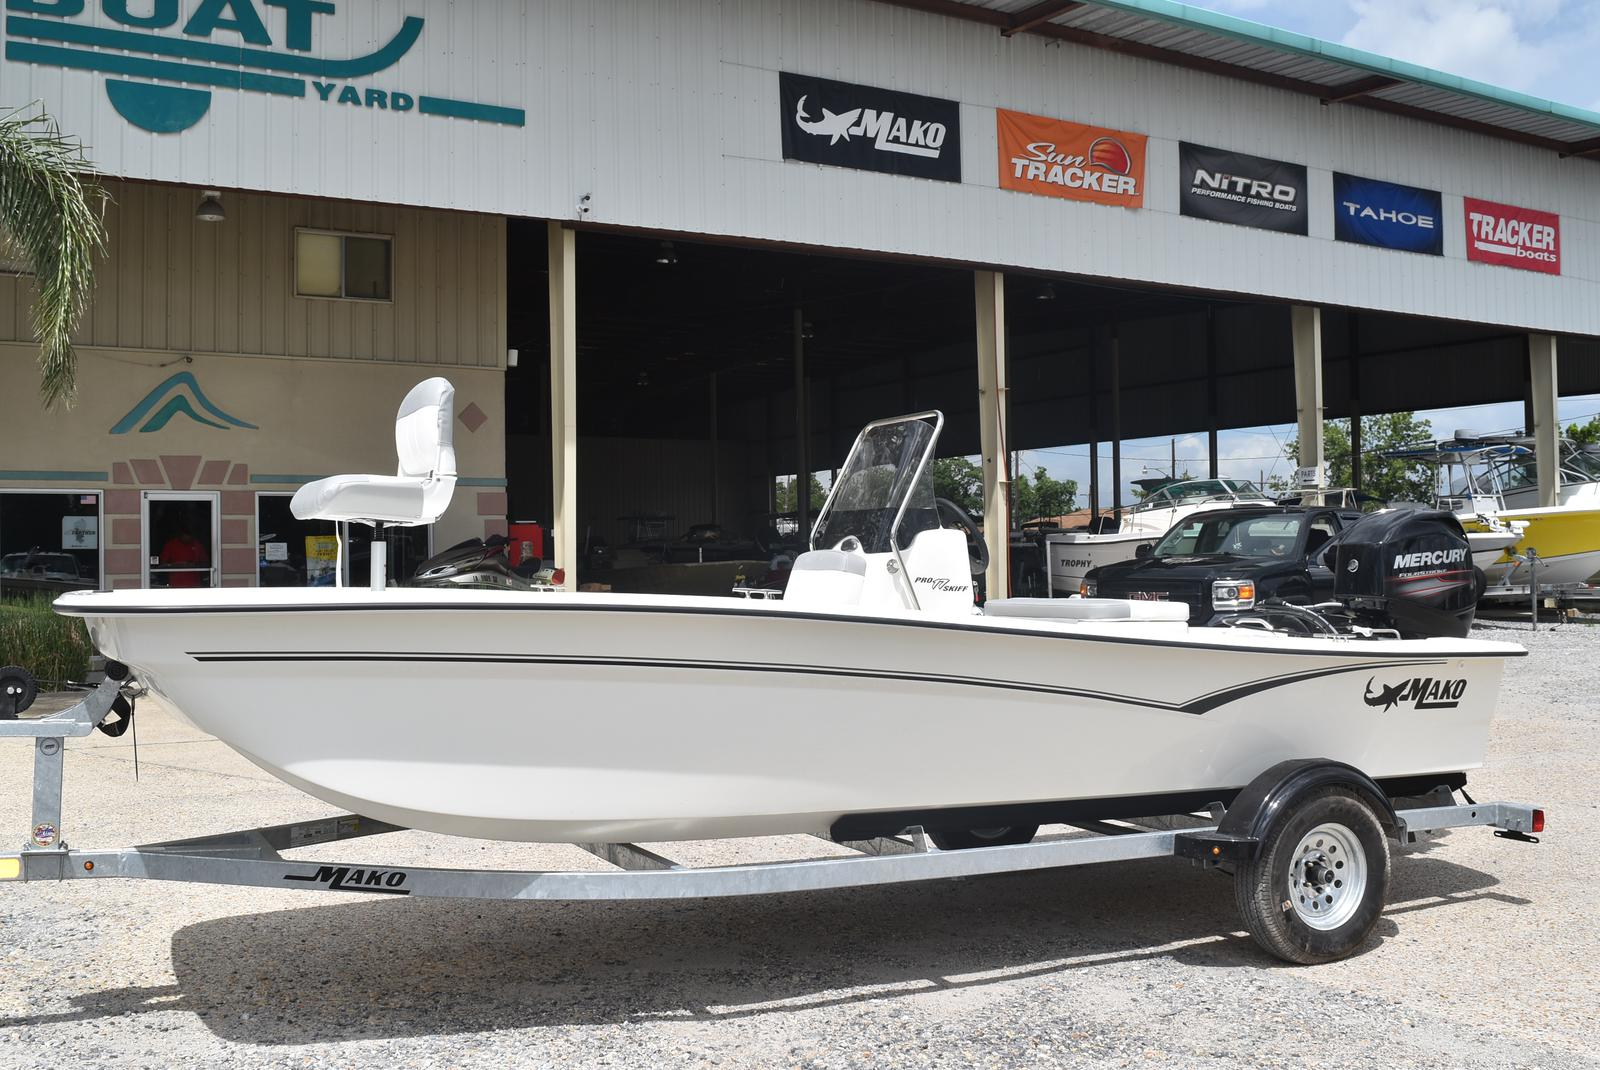 2020 Mako boat for sale, model of the boat is Pro Skiff 17, 75 ELPT & Image # 103 of 702